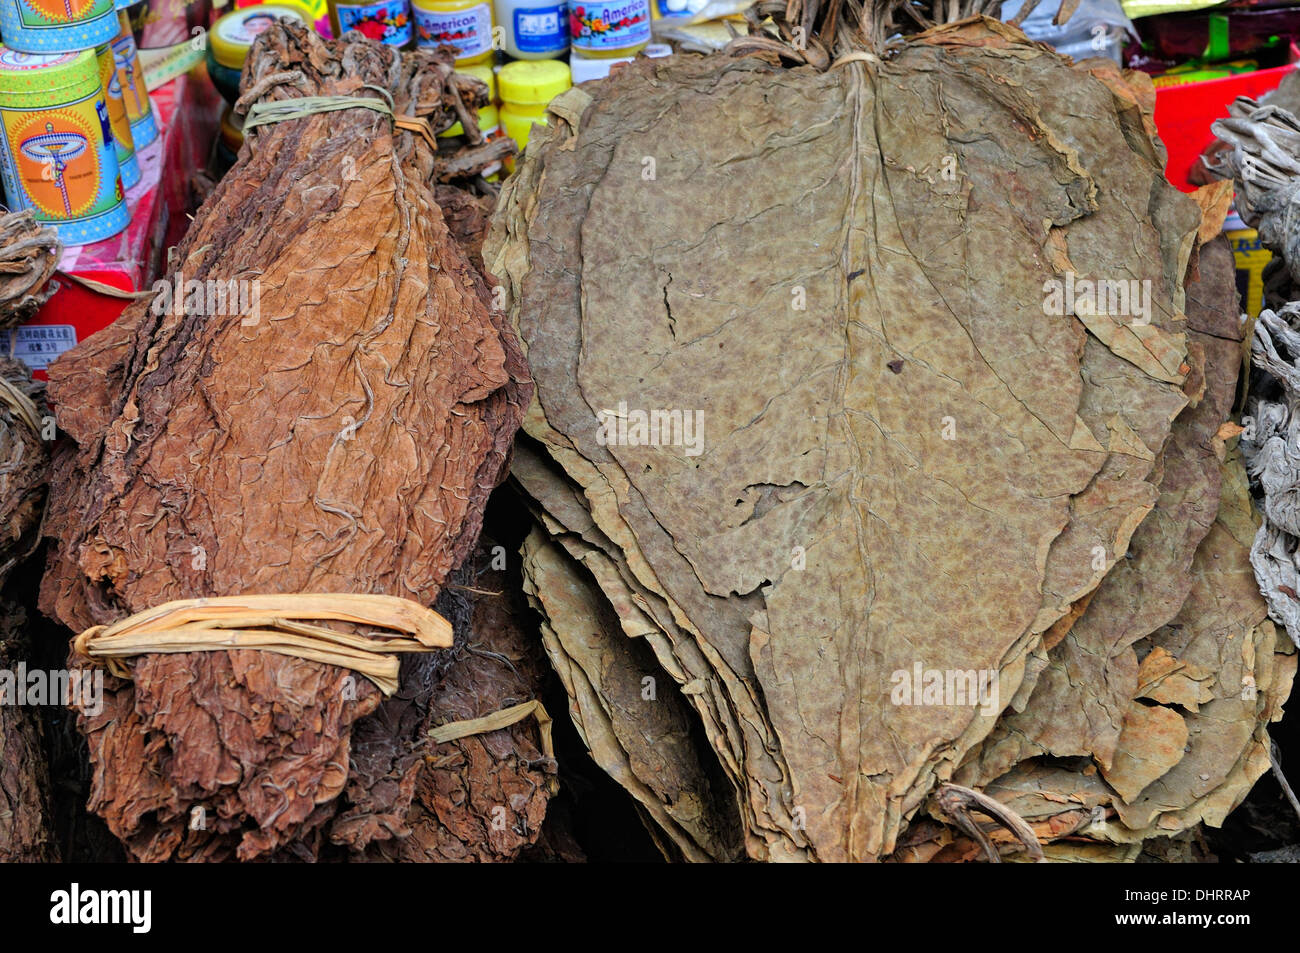 dry tobacco leaves Lhasa at the market - Stock Image